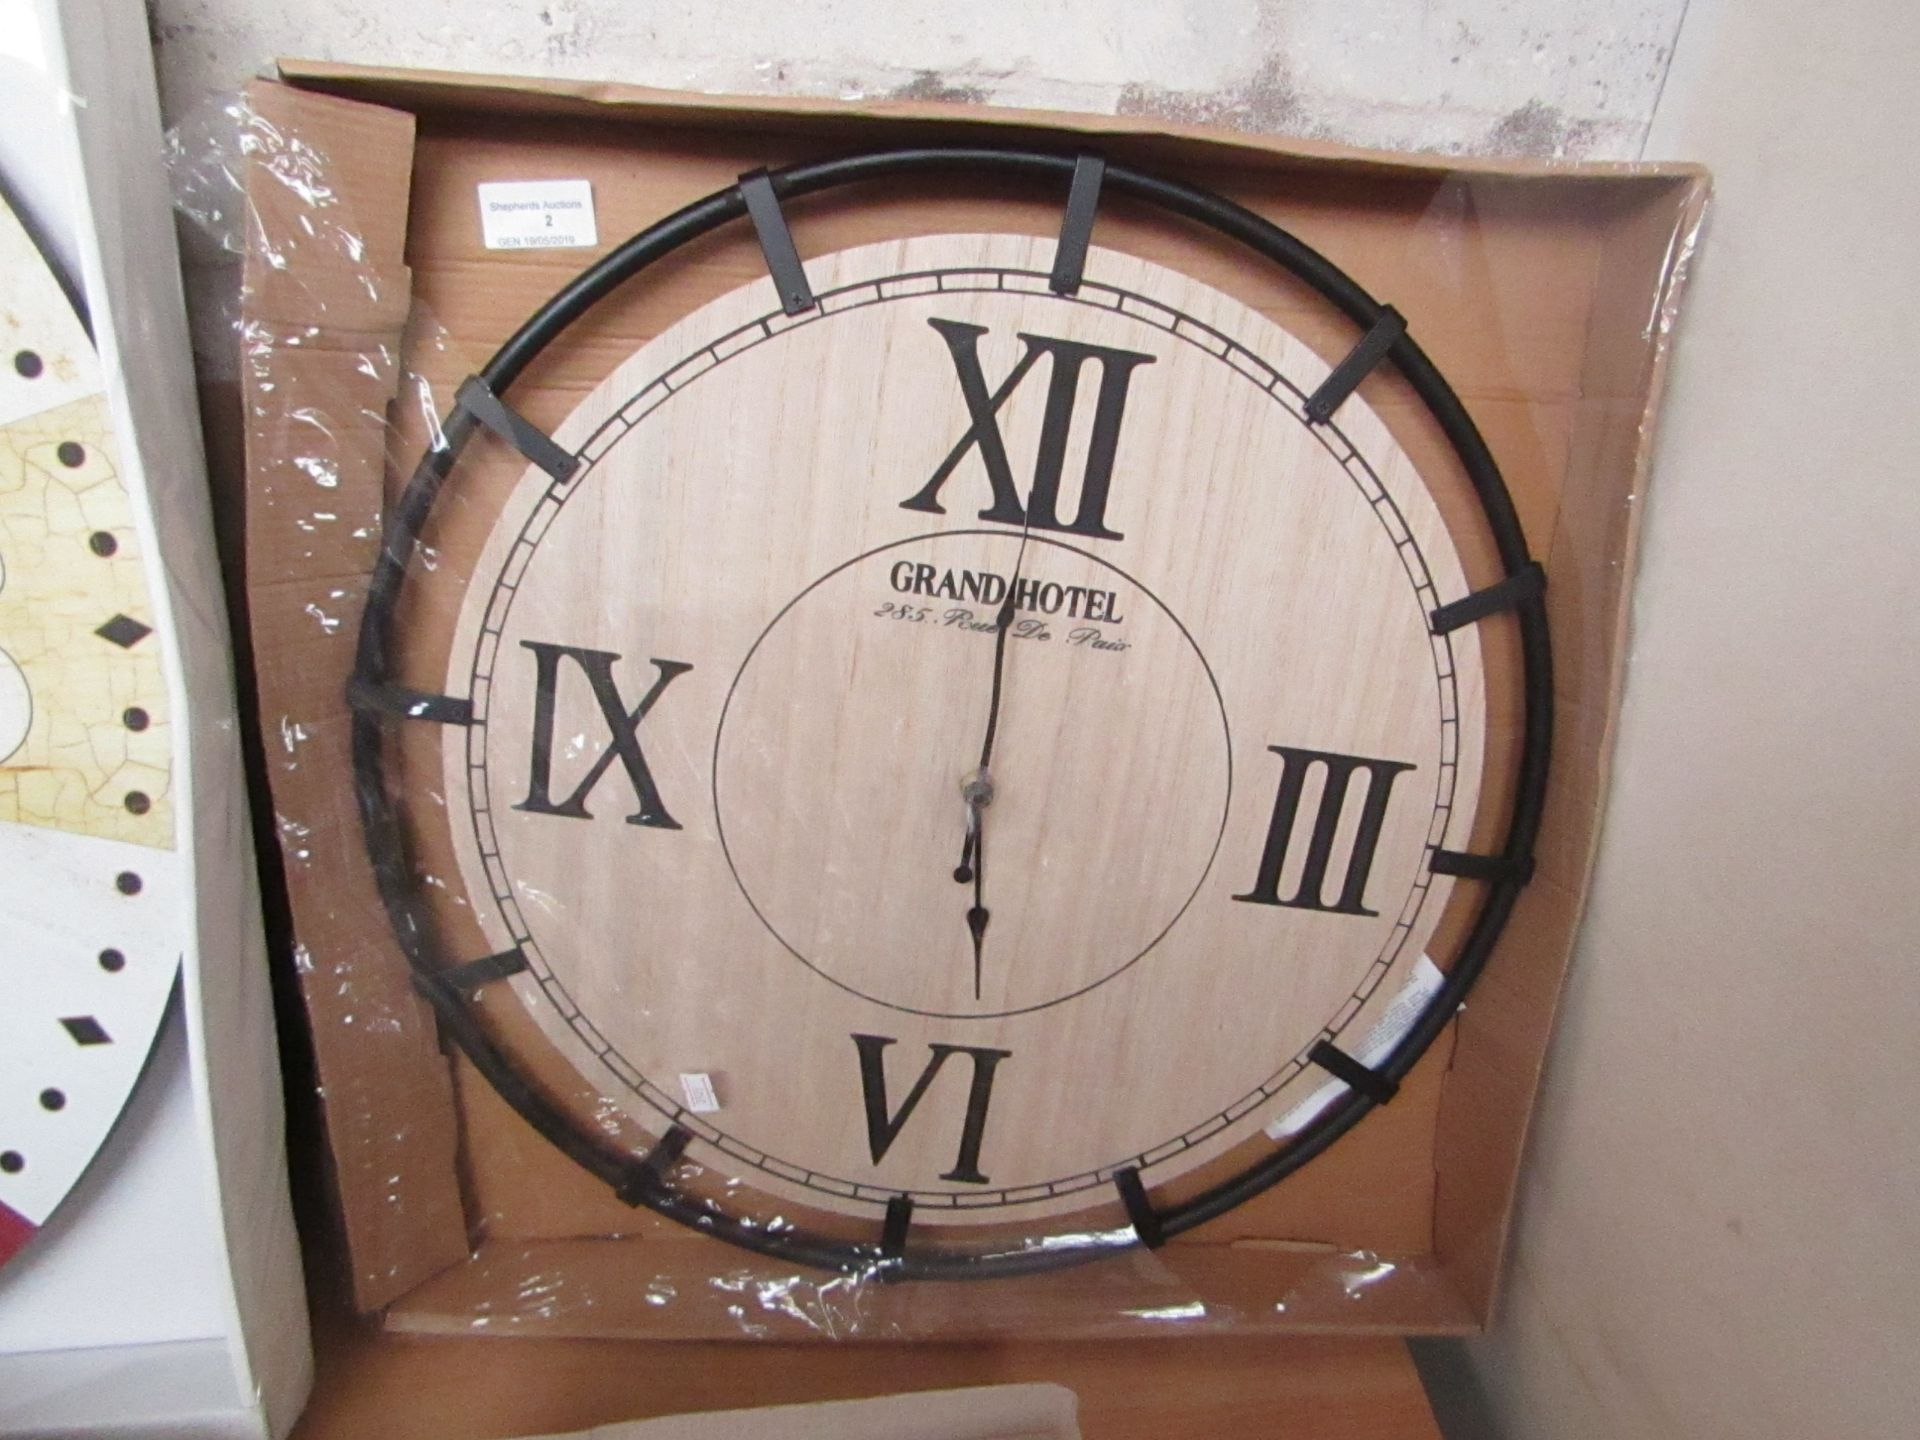 Lot 2 - Grand Hotel Wall Clock 46 cm packaged unchecked